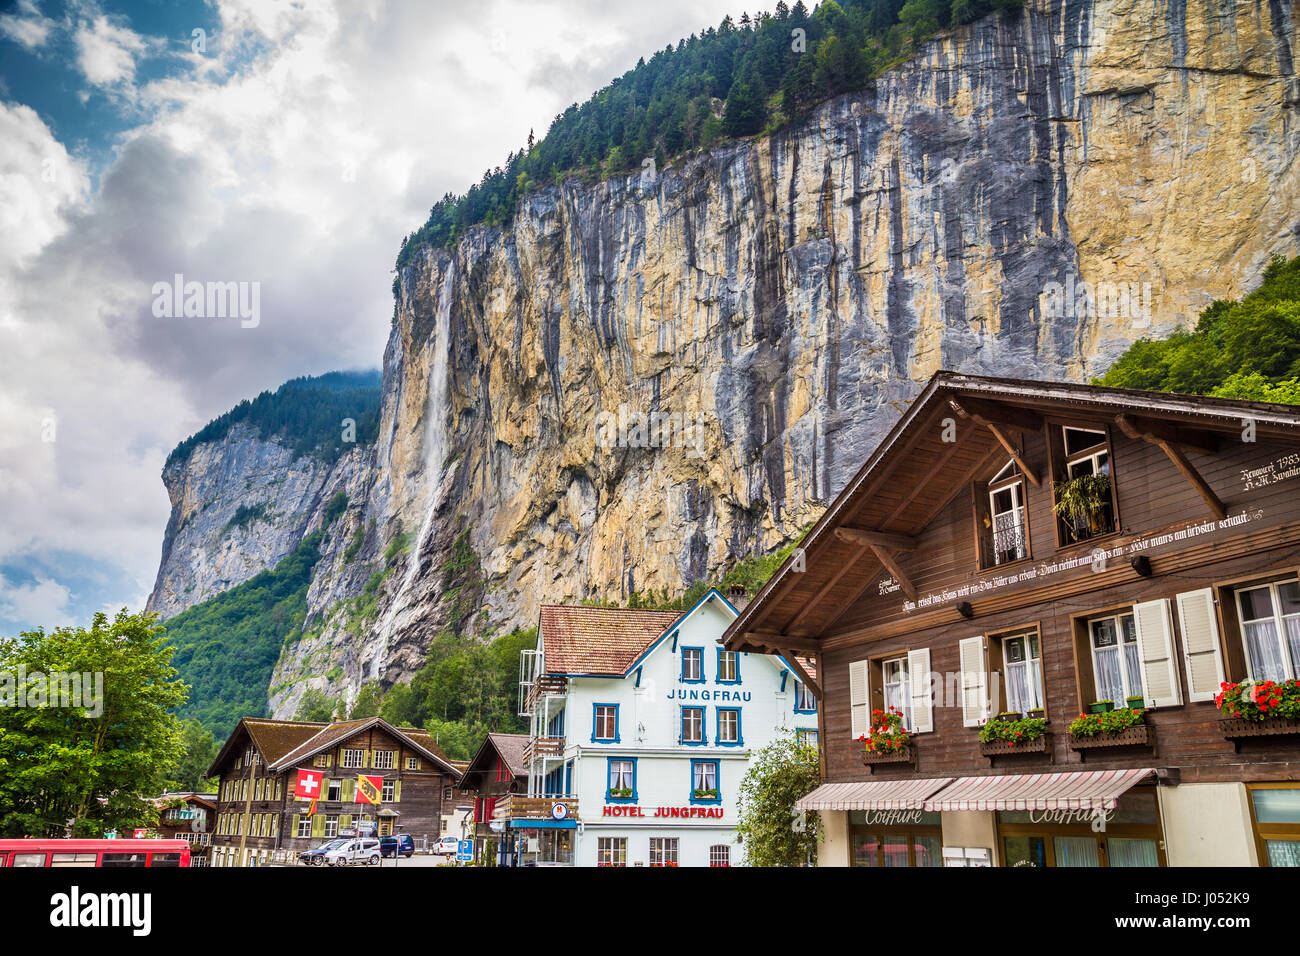 Beautiful view of the historic town of Lauterbrunnen with famous Staubbach Falls in the background on a sunny day - Stock Image